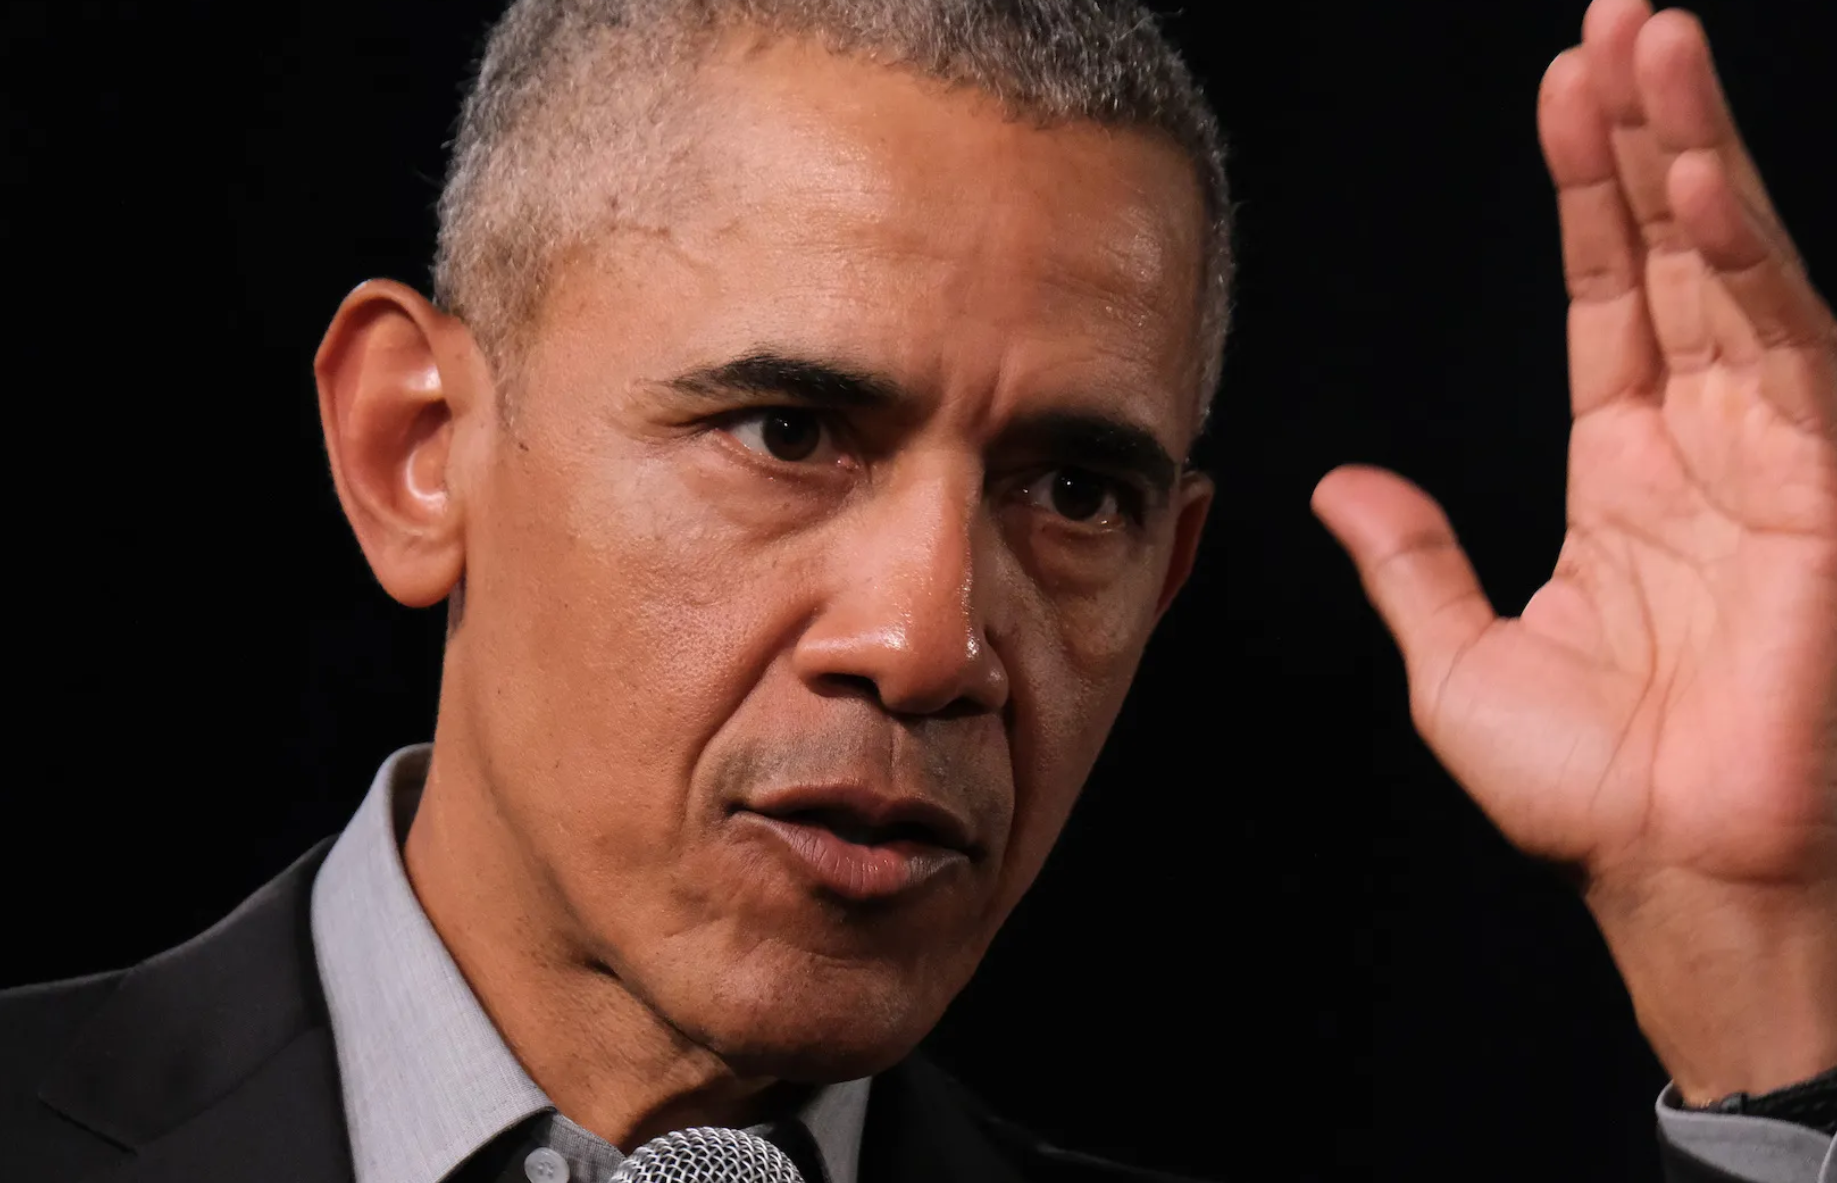 barack-obama-openly-claims-the-republican-party-is-rigging-the-game-trump-questions-election-gets-locked-down-with-ban